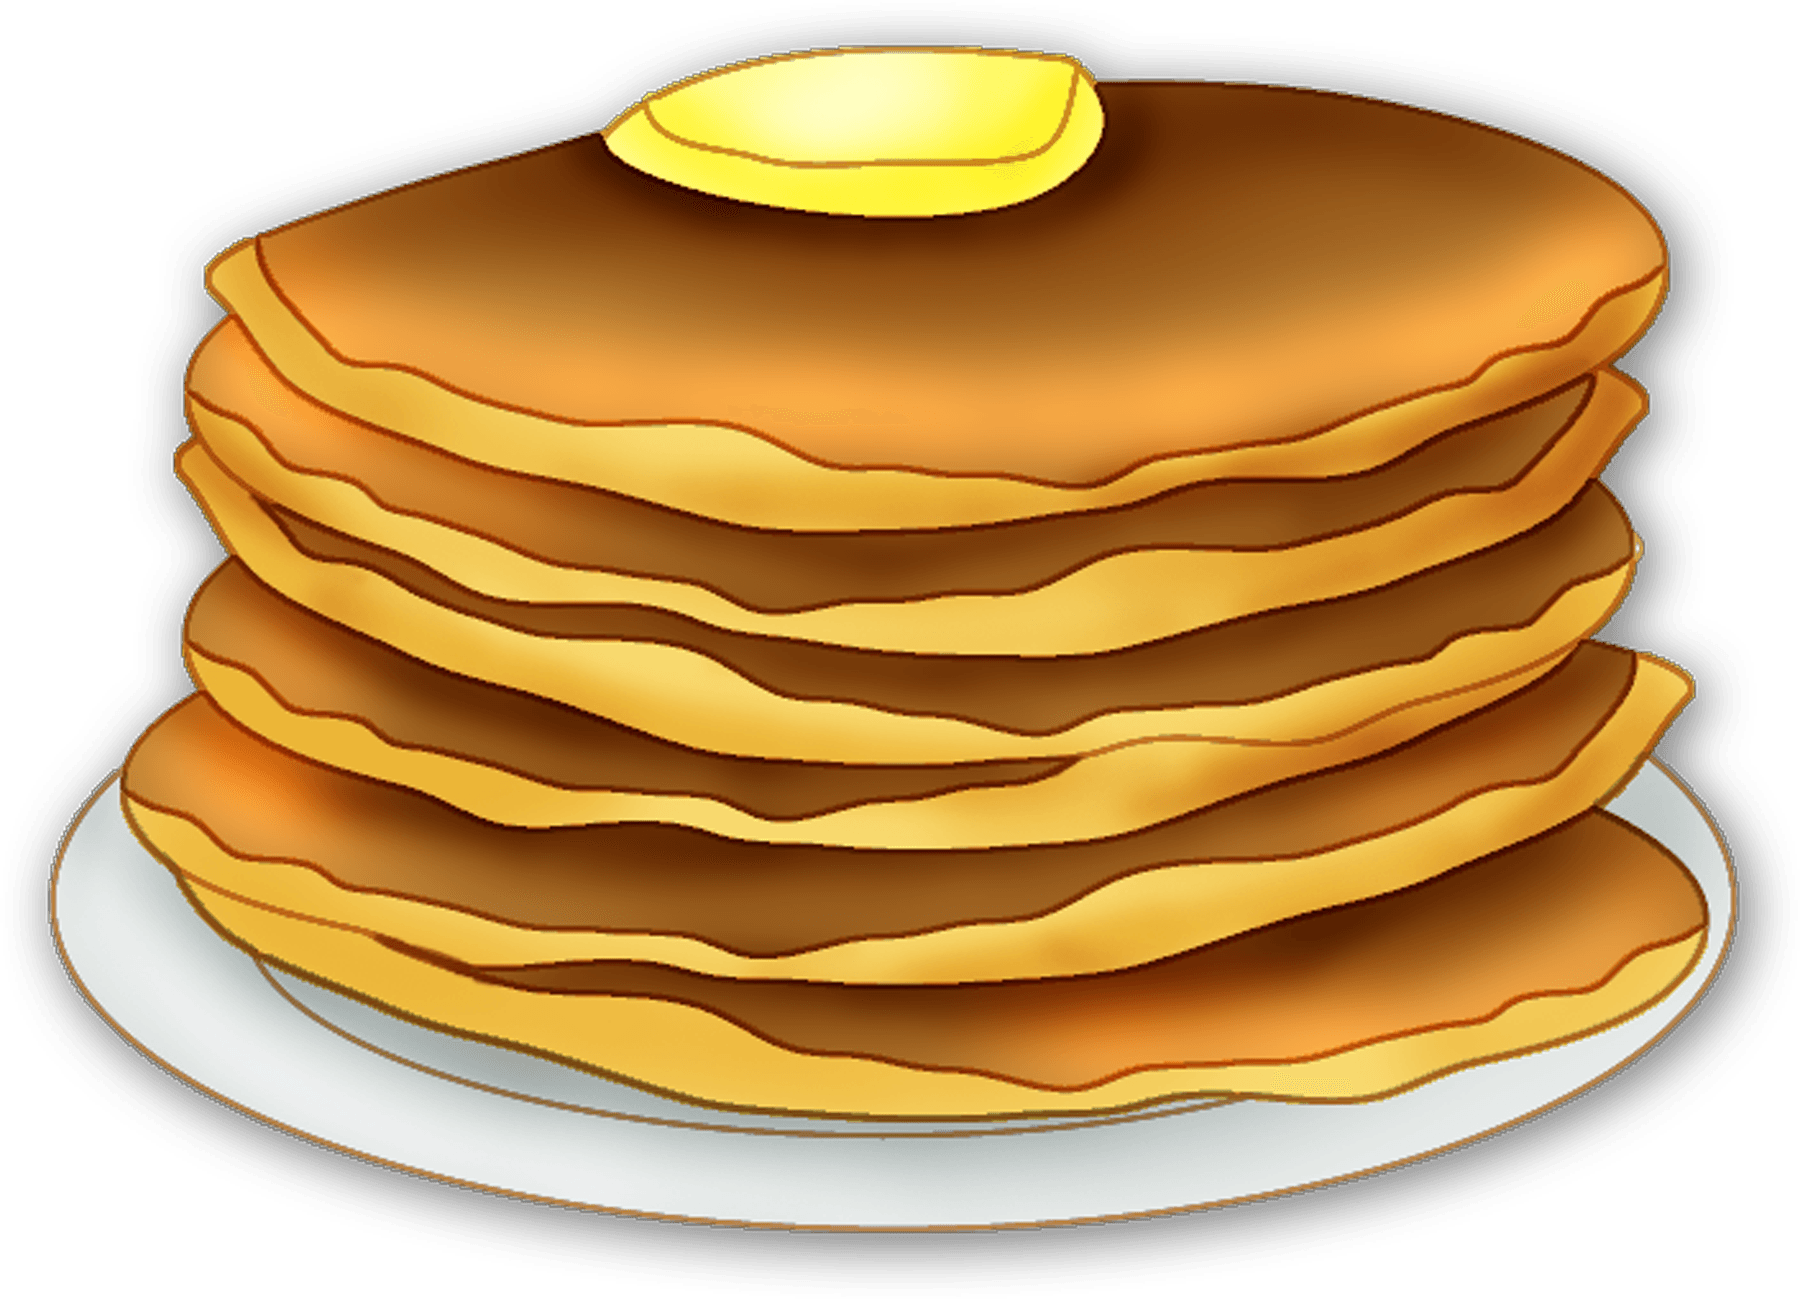 Transparent pancakes animated. Disney clip art library